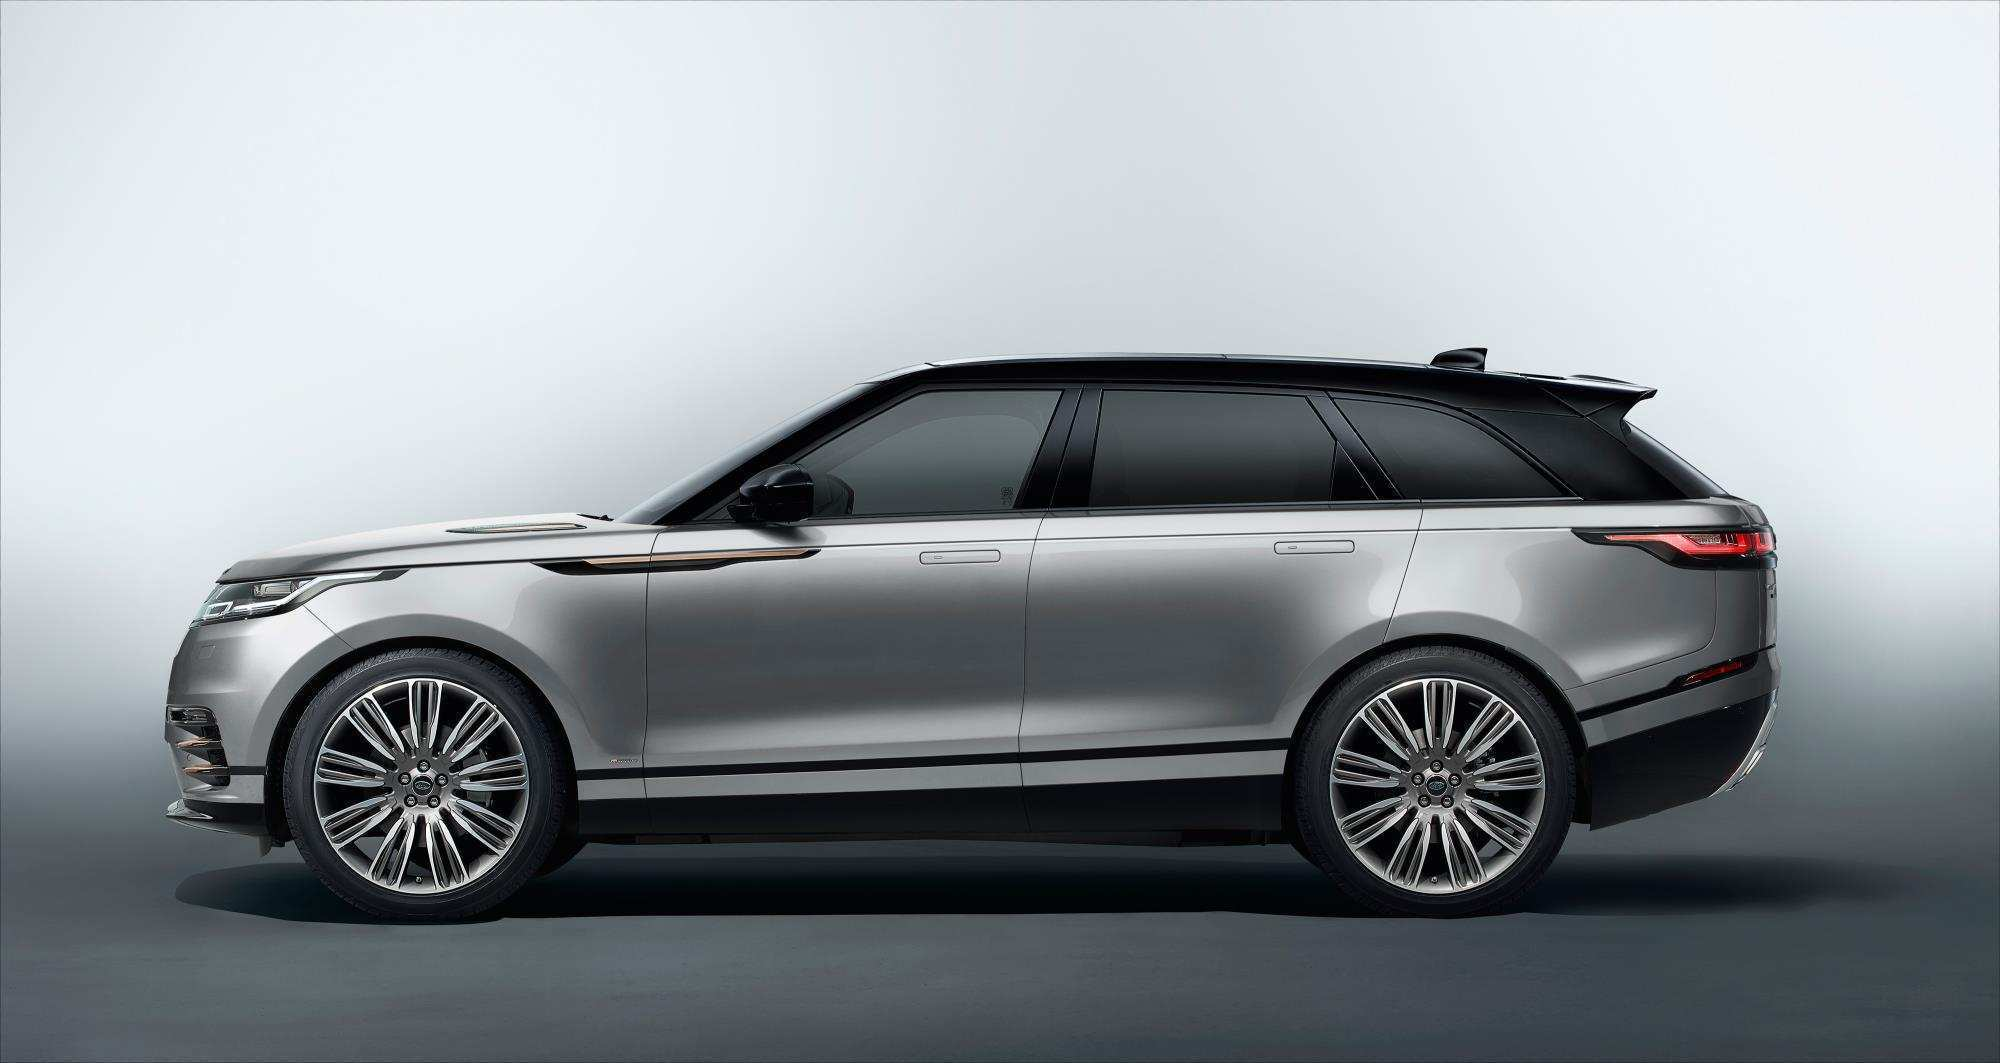 38 Great Land Rover Electric 2020 New Concept by Land Rover Electric 2020